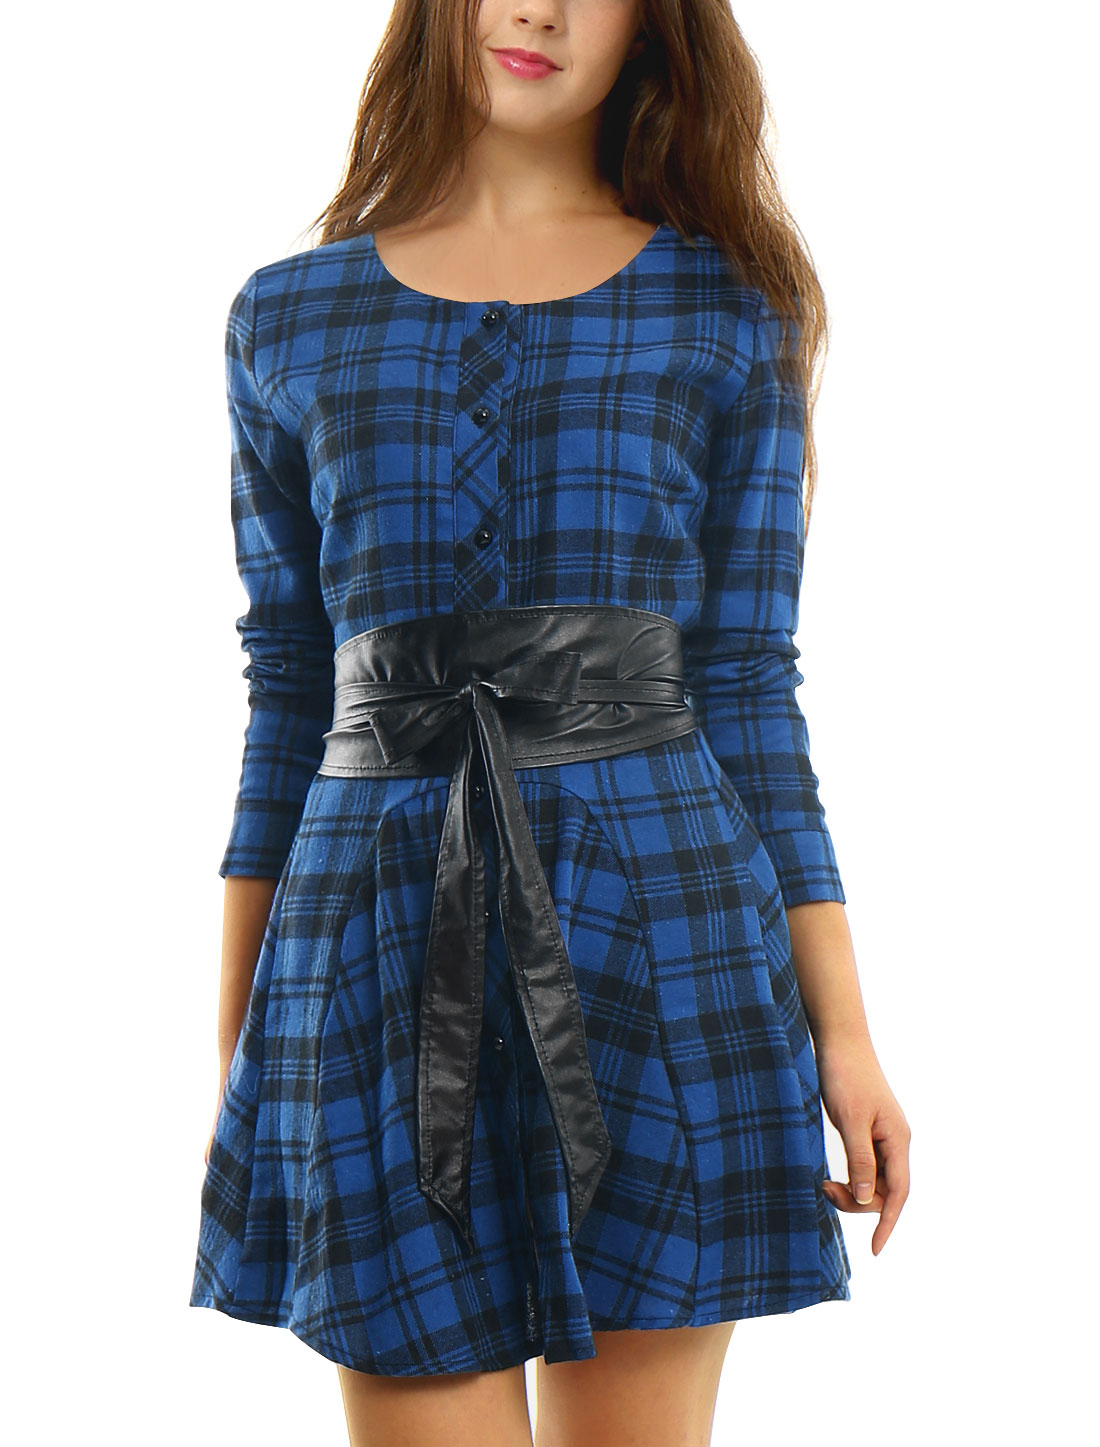 Women Plaids Long Sleeves Belted A Line Shirt Dress Dark Blue Black XS